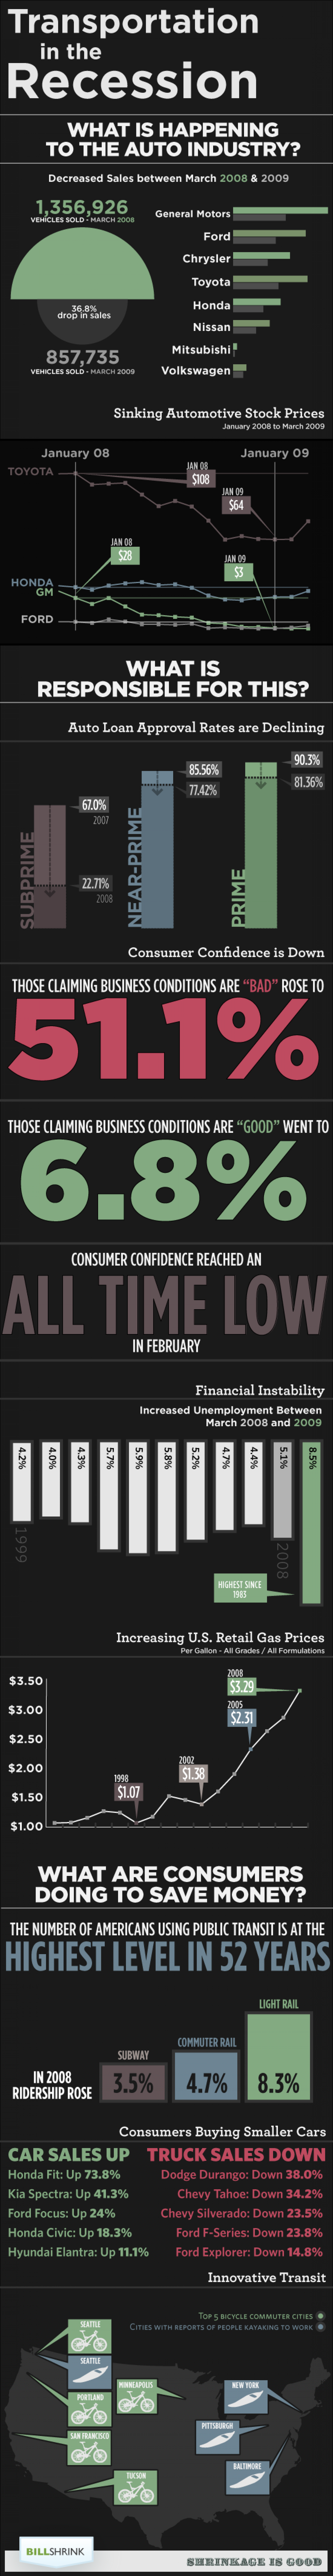 Transportation in the Recession Infographic